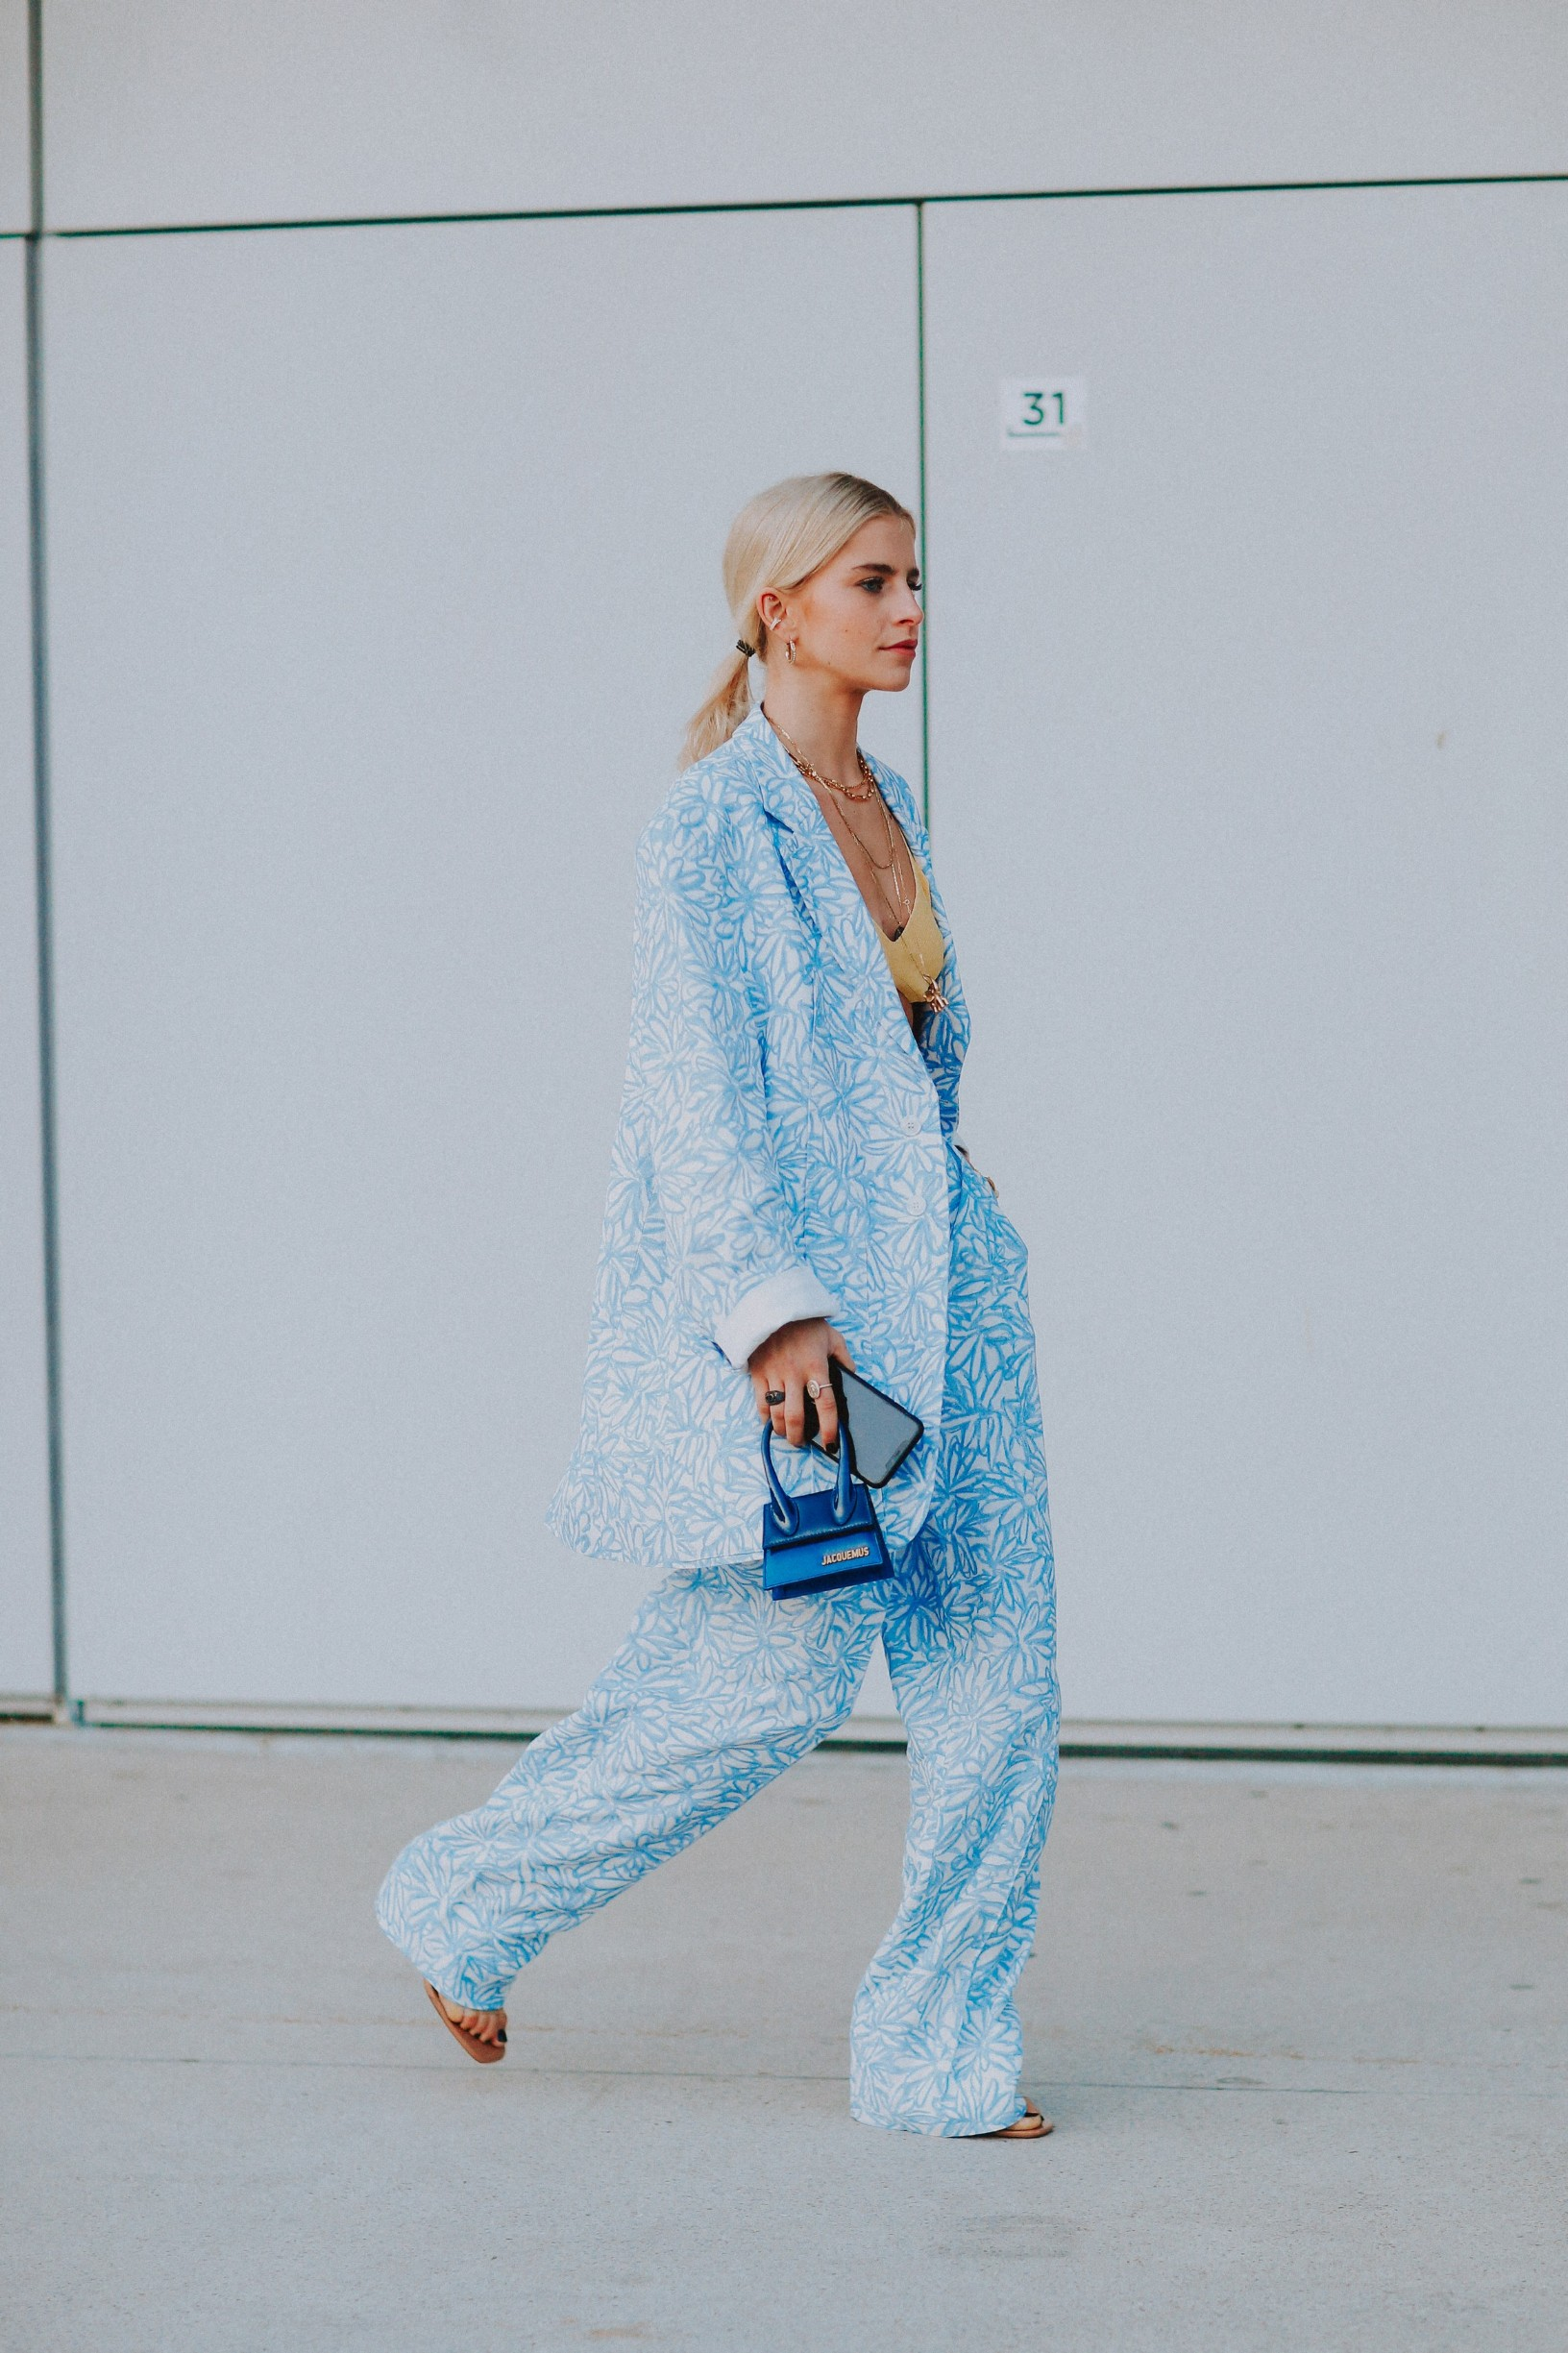 Street style, Caroline Daur arriving at Jacquemus Fall-Winter 2020-2021 show, held at La Defense Arena, Paris, France, on January 18th, 2020.,Image: 493571835, License: Rights-managed, Restrictions: , Model Release: no, Credit line: Bertrand-Hillion Marie-Paola/ABACA / Abaca Press / Profimedia